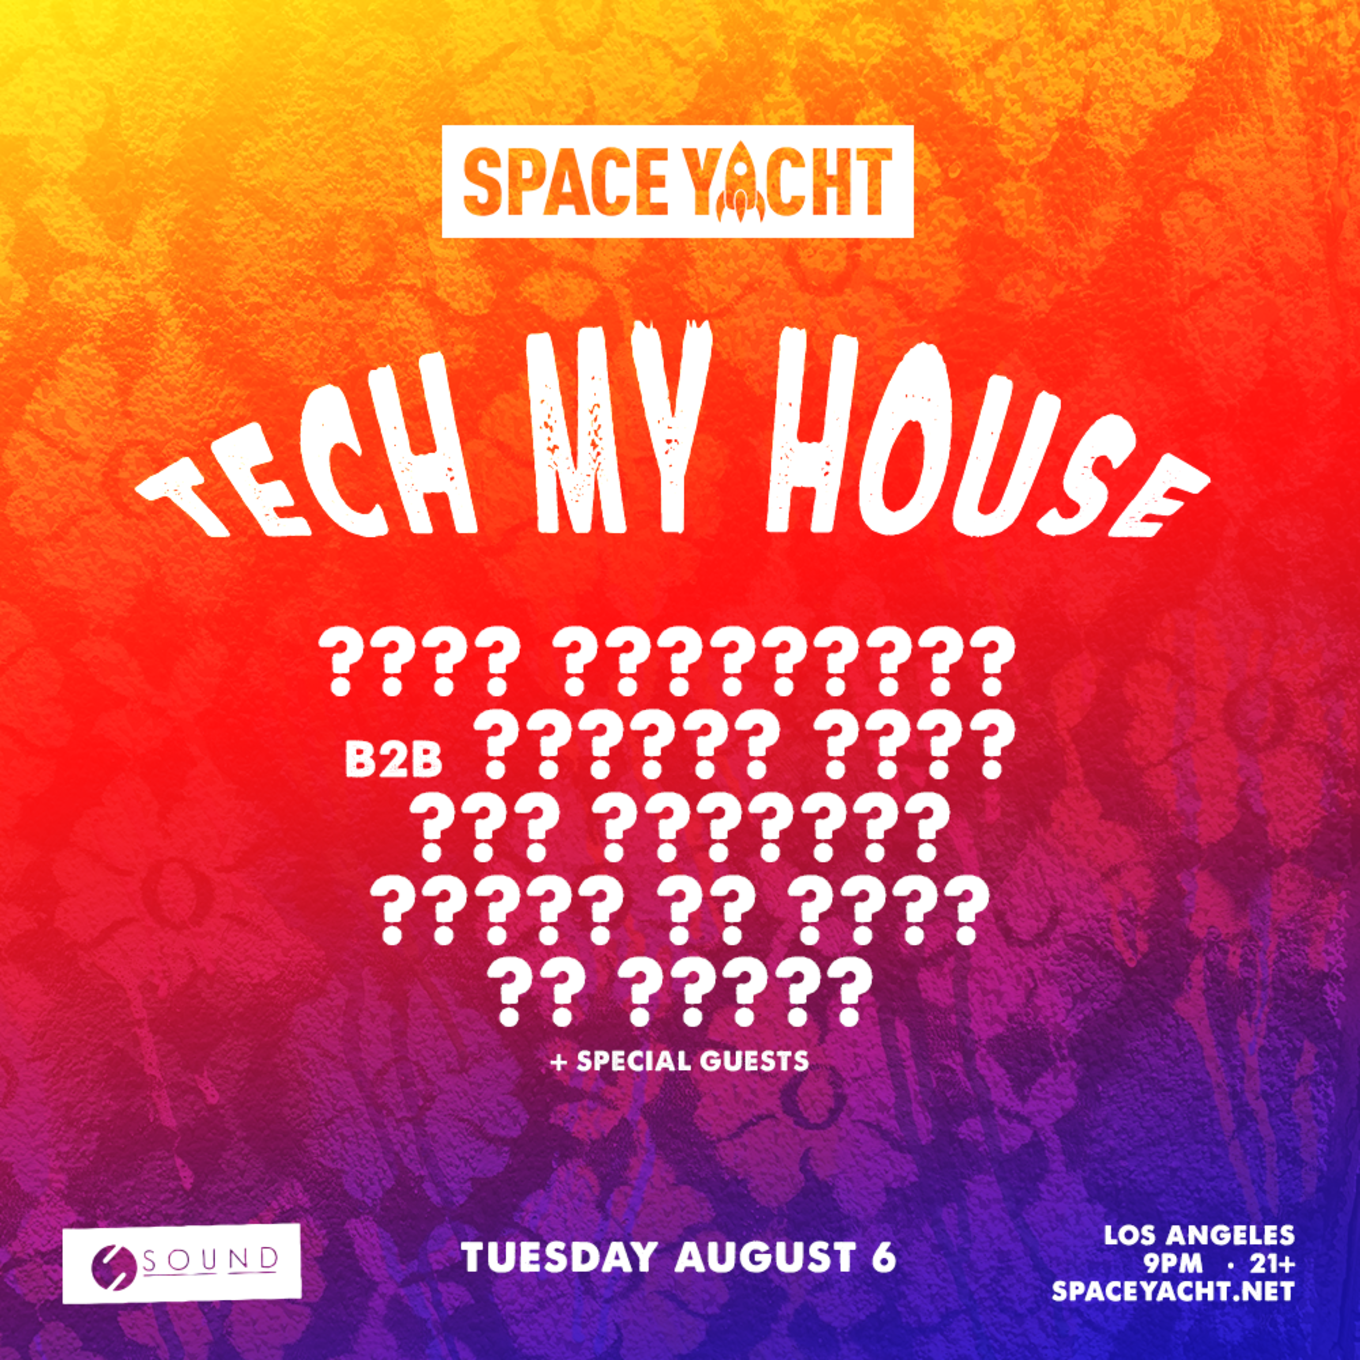 Space Yacht: TECH MY HOUSE [Los Angeles] - Tickets - Sound